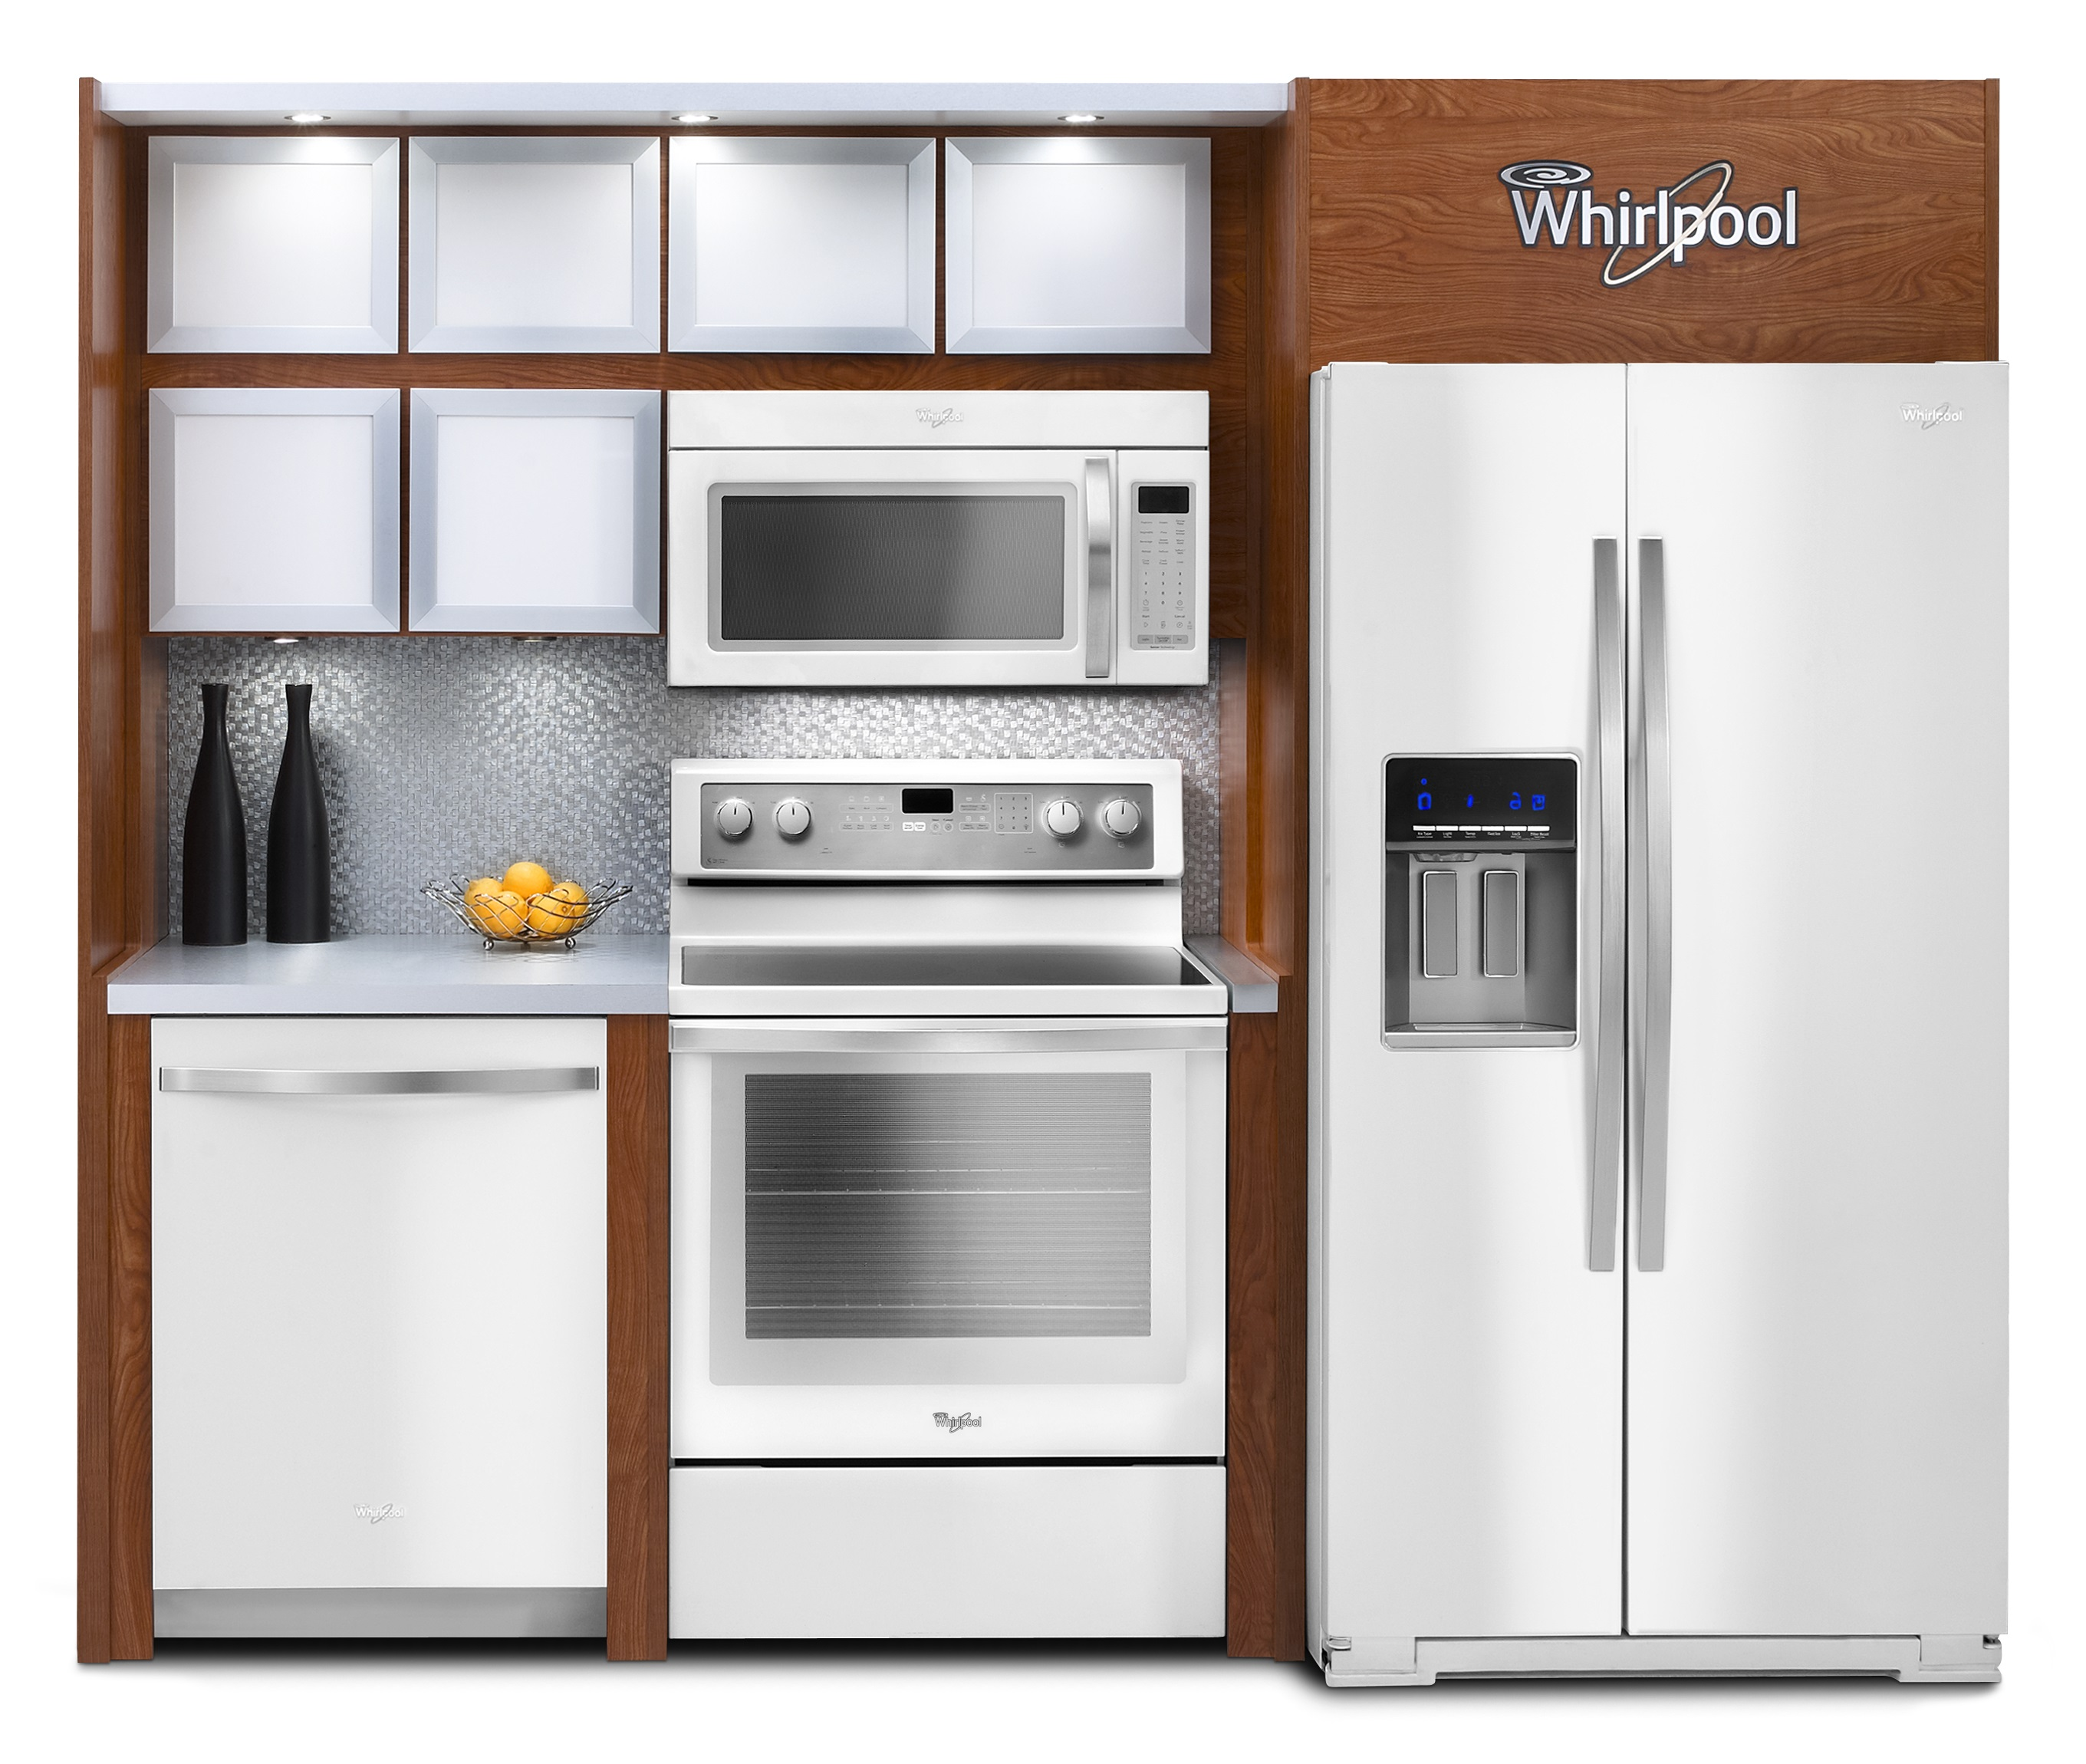 New White Appliances ~ Getting the most our of your new kitchen appliances